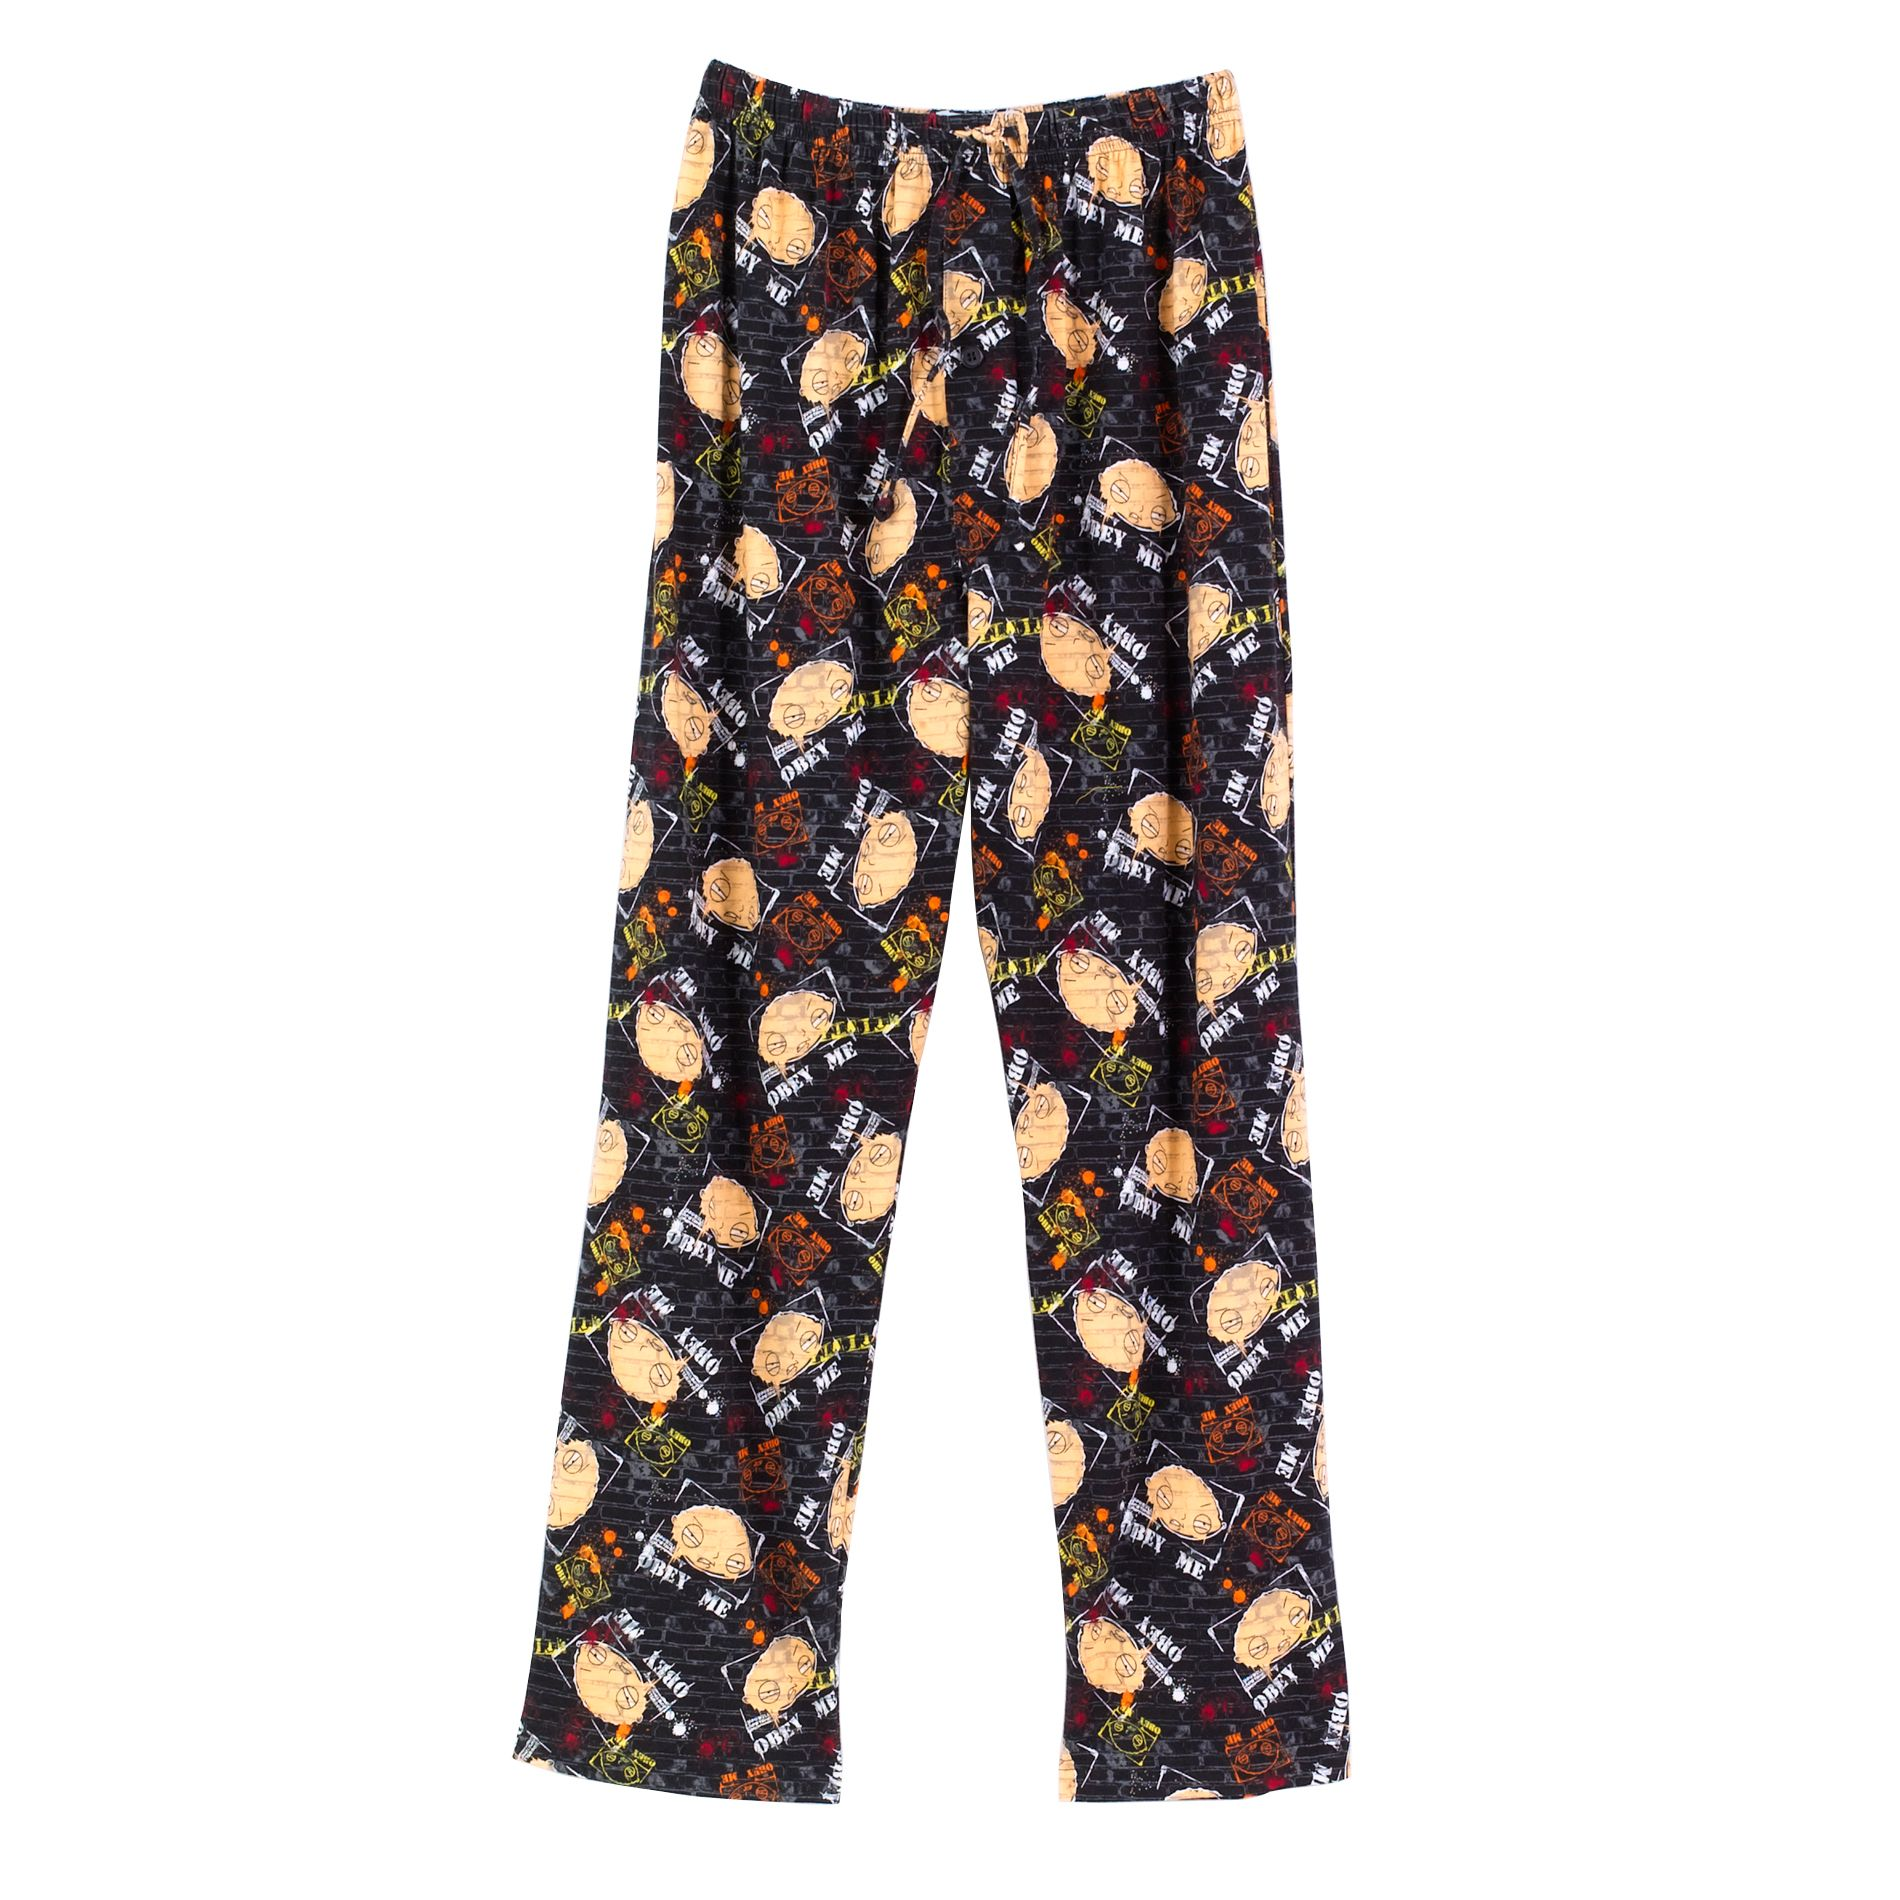 f3dc4c21d2a6 Top 10 Best Family Guy Pajama Pants In 2019 Reviews